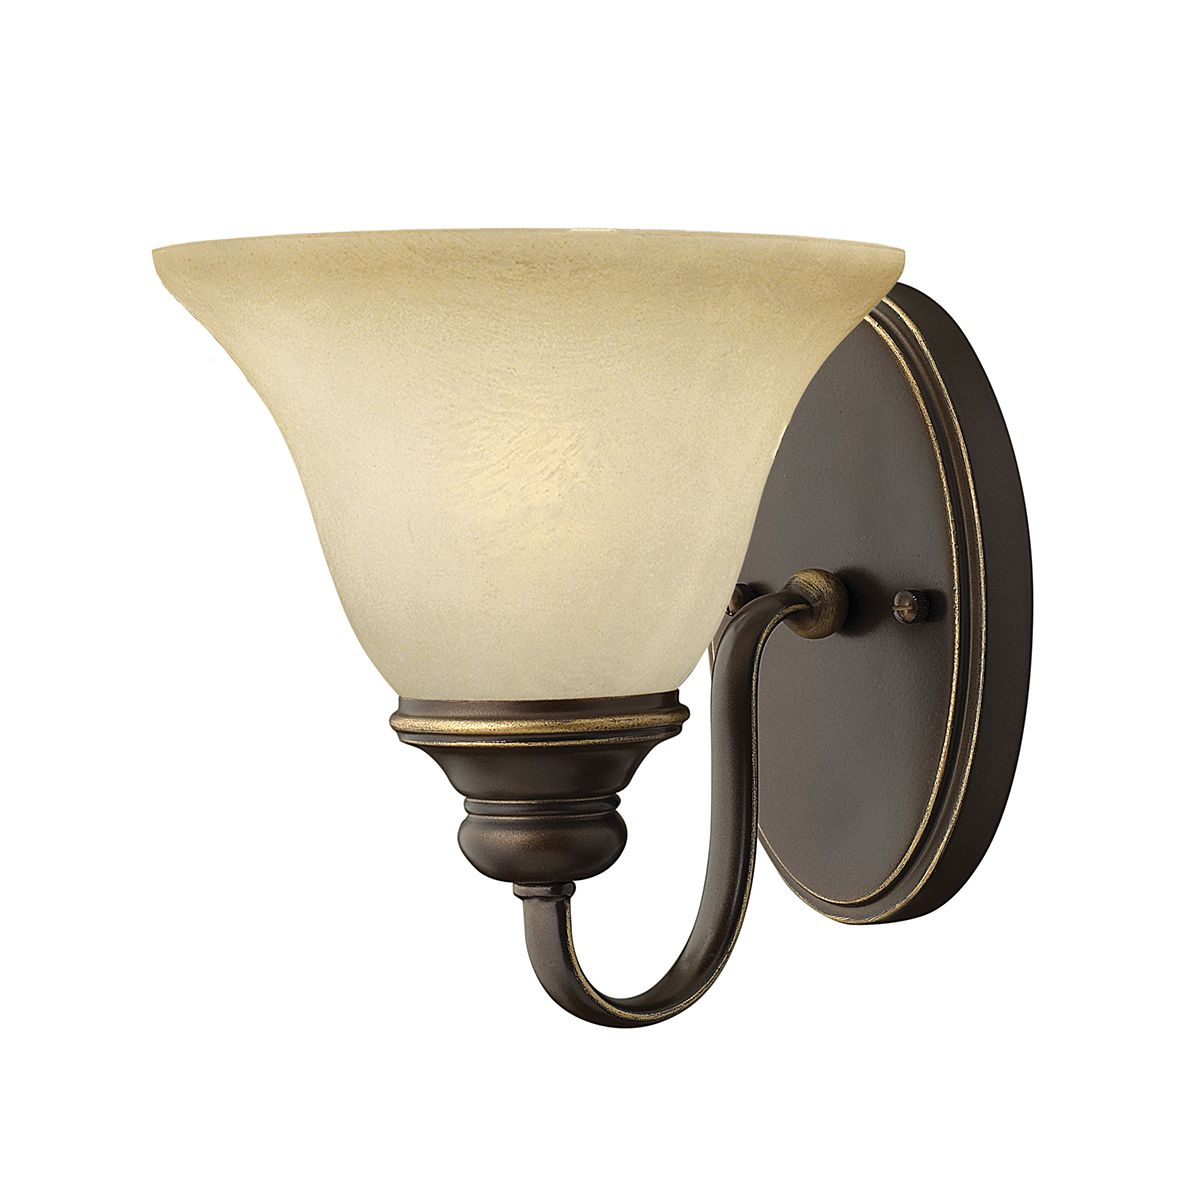 Cello Single Wall Light in Antique Bronze with Vintage Alabaster Glass - HINKLEY HK CELLO1